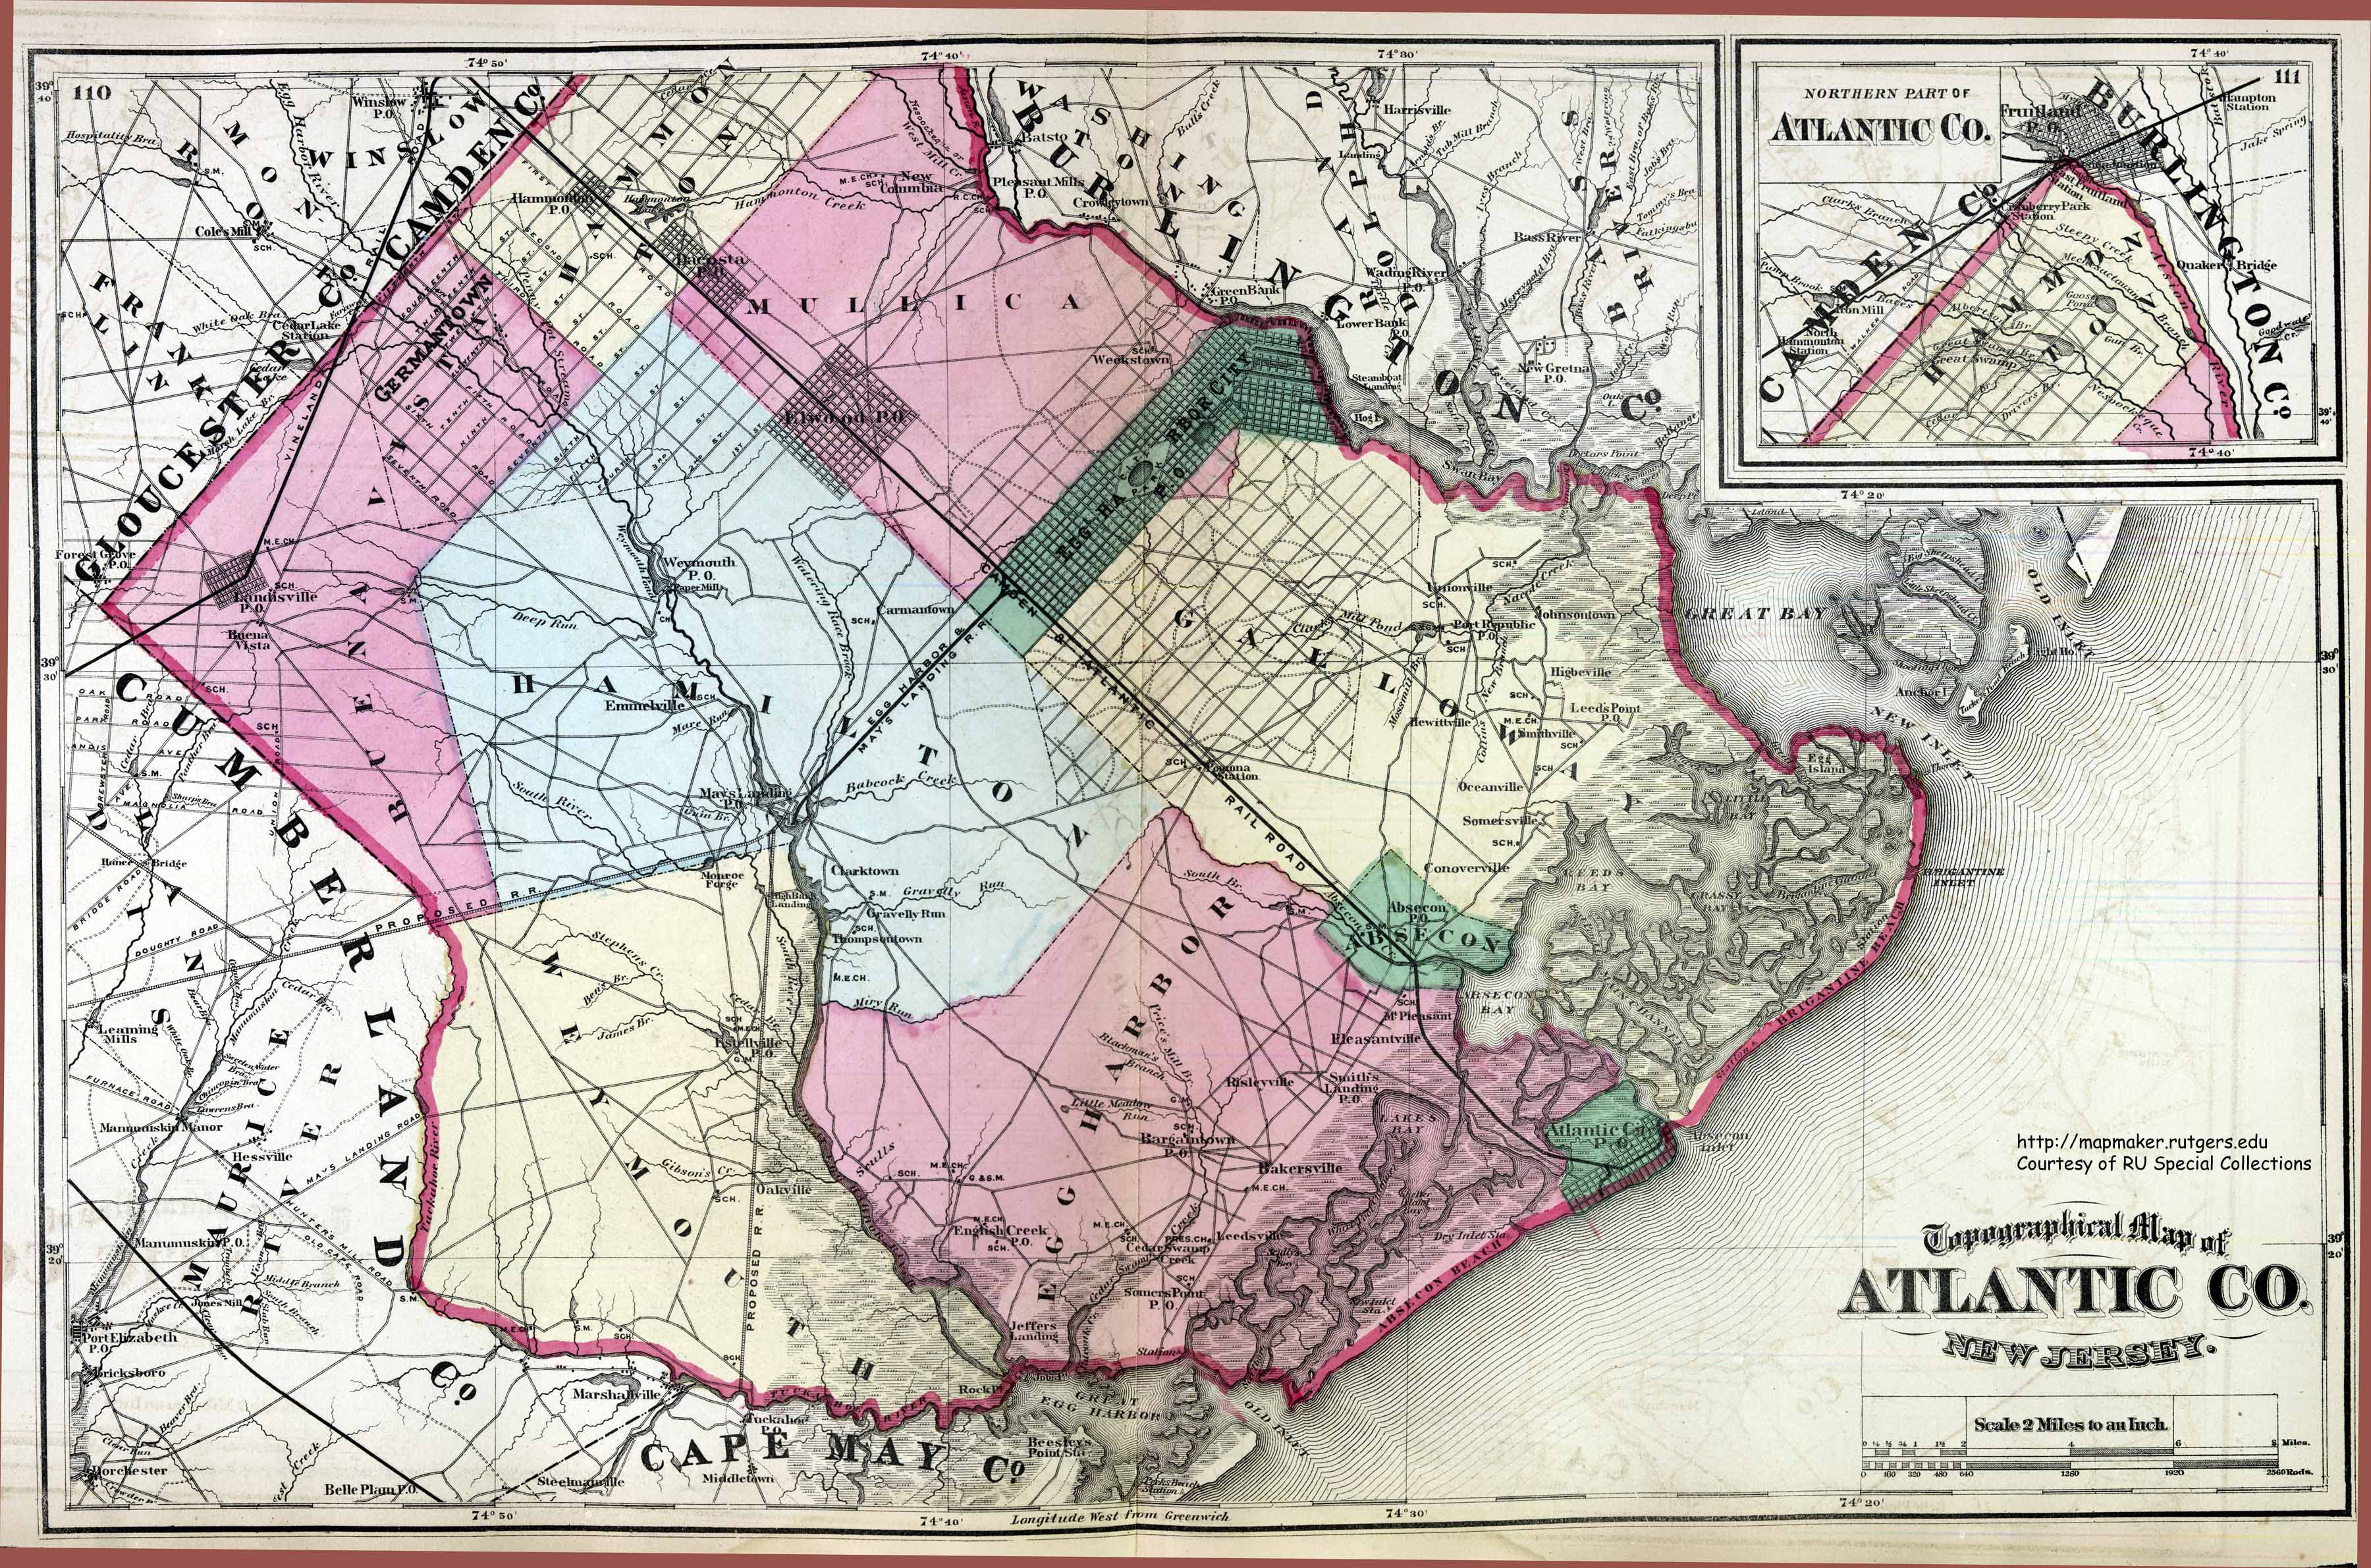 Historical Atlantic County New Jersey Maps